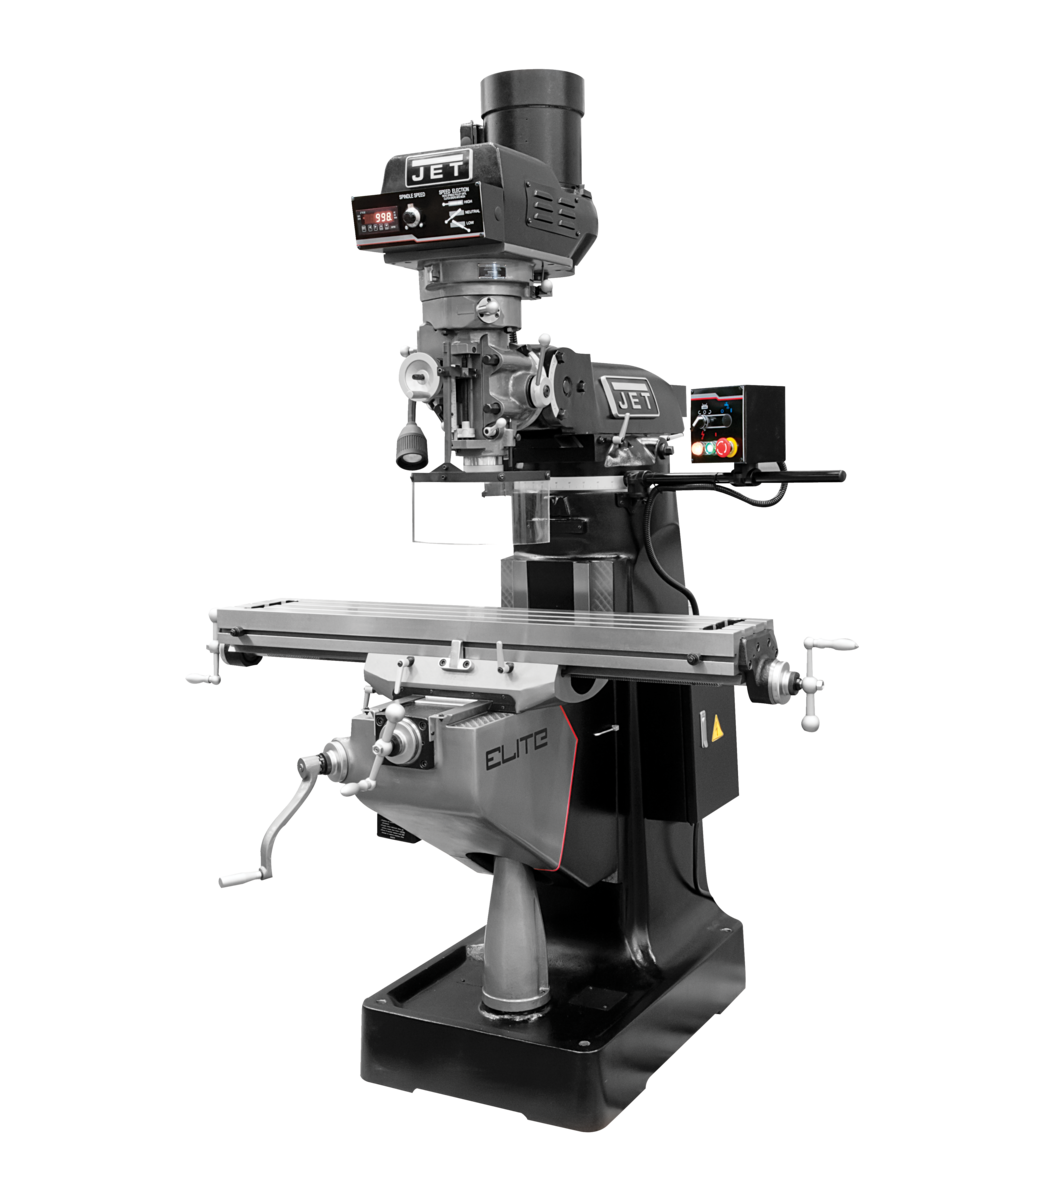 EVS-949 Mill with 3-Axis Newall DP700 (Quill) DRO and X, Y-Axis JET Powerfeeds and USA Made Air Draw Bar